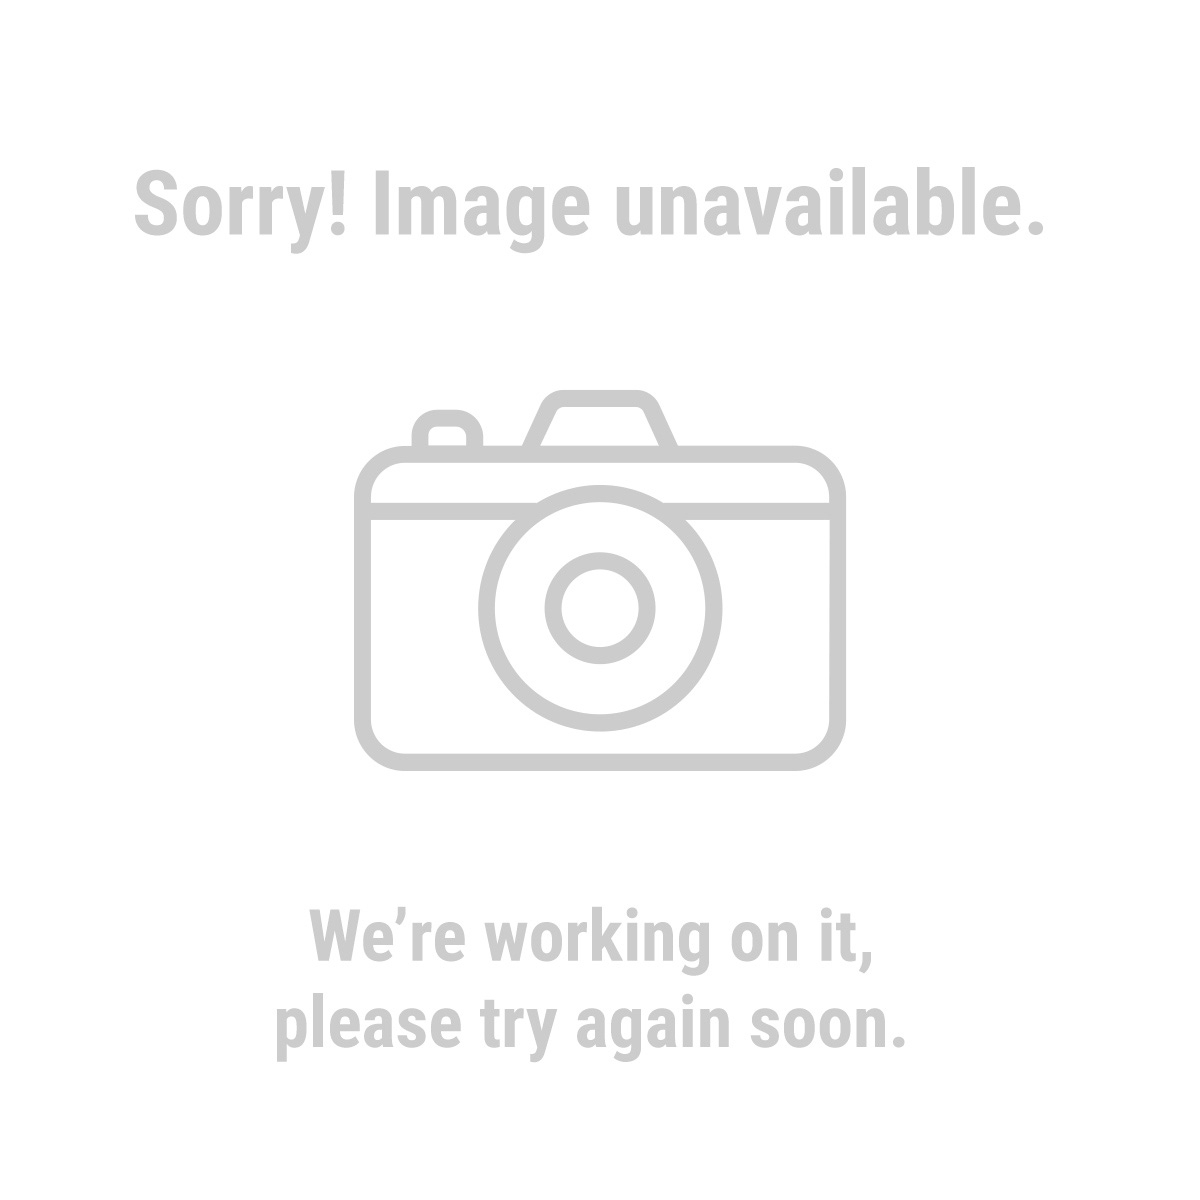 Pittsburgh® 63166 18 Pc SAE & Metric T-Handle Ball End Hex Key Set